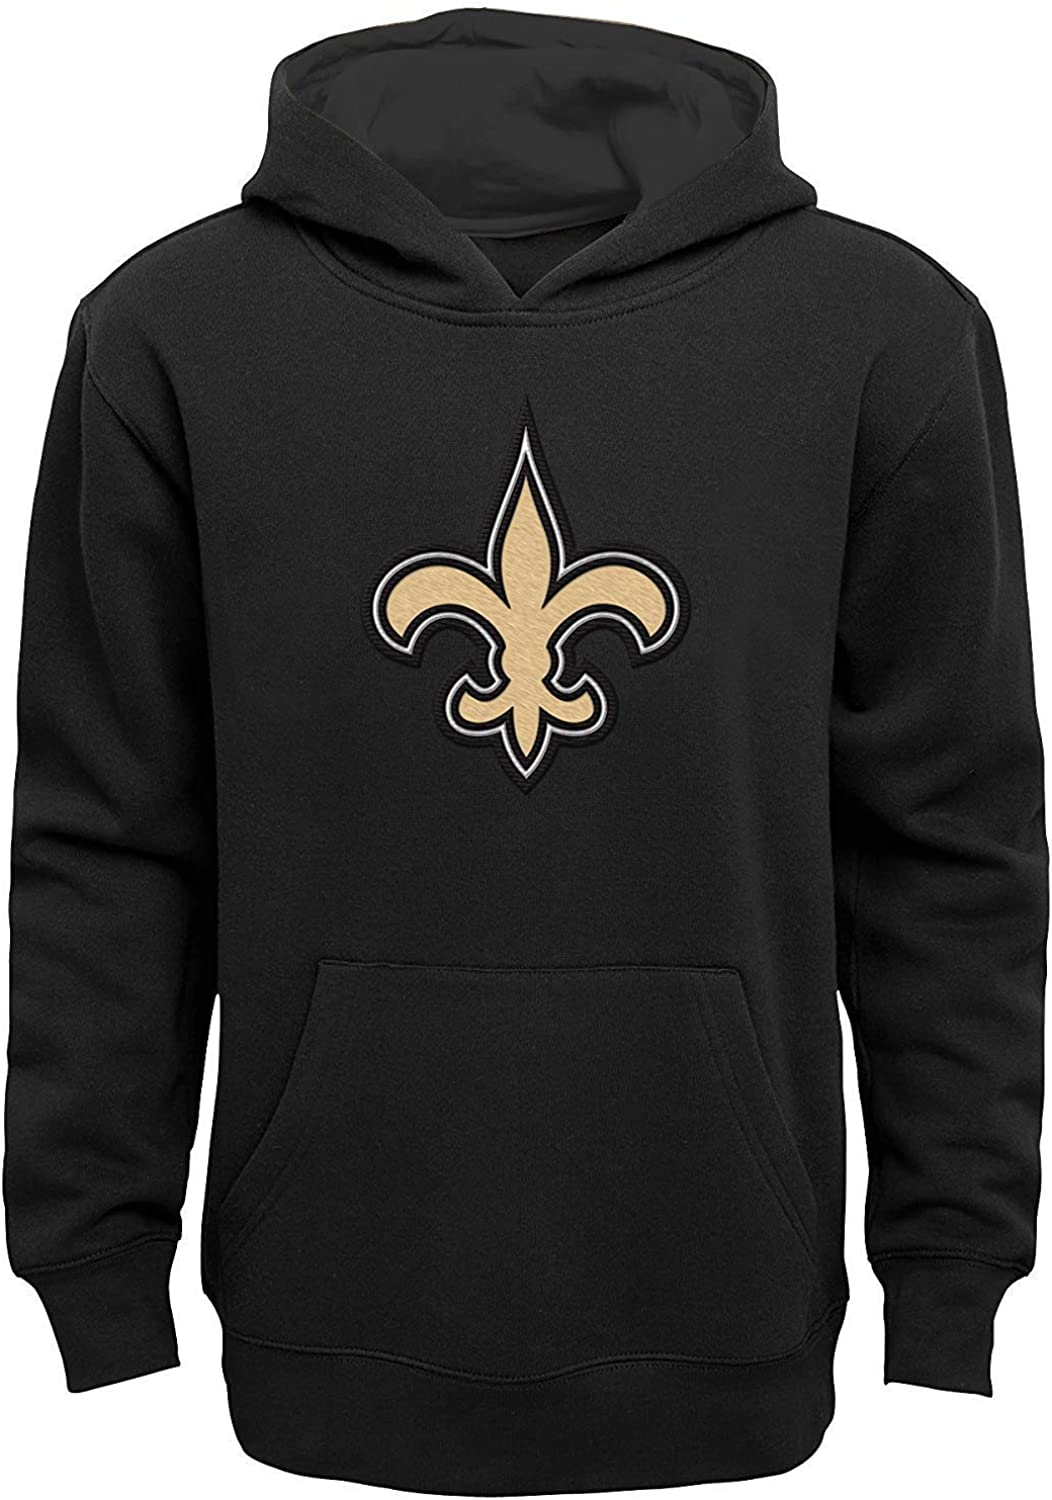 NFL Boys Youth 8-20 Team Color Primary Low price Pullover Credence Prime Logo Fleec